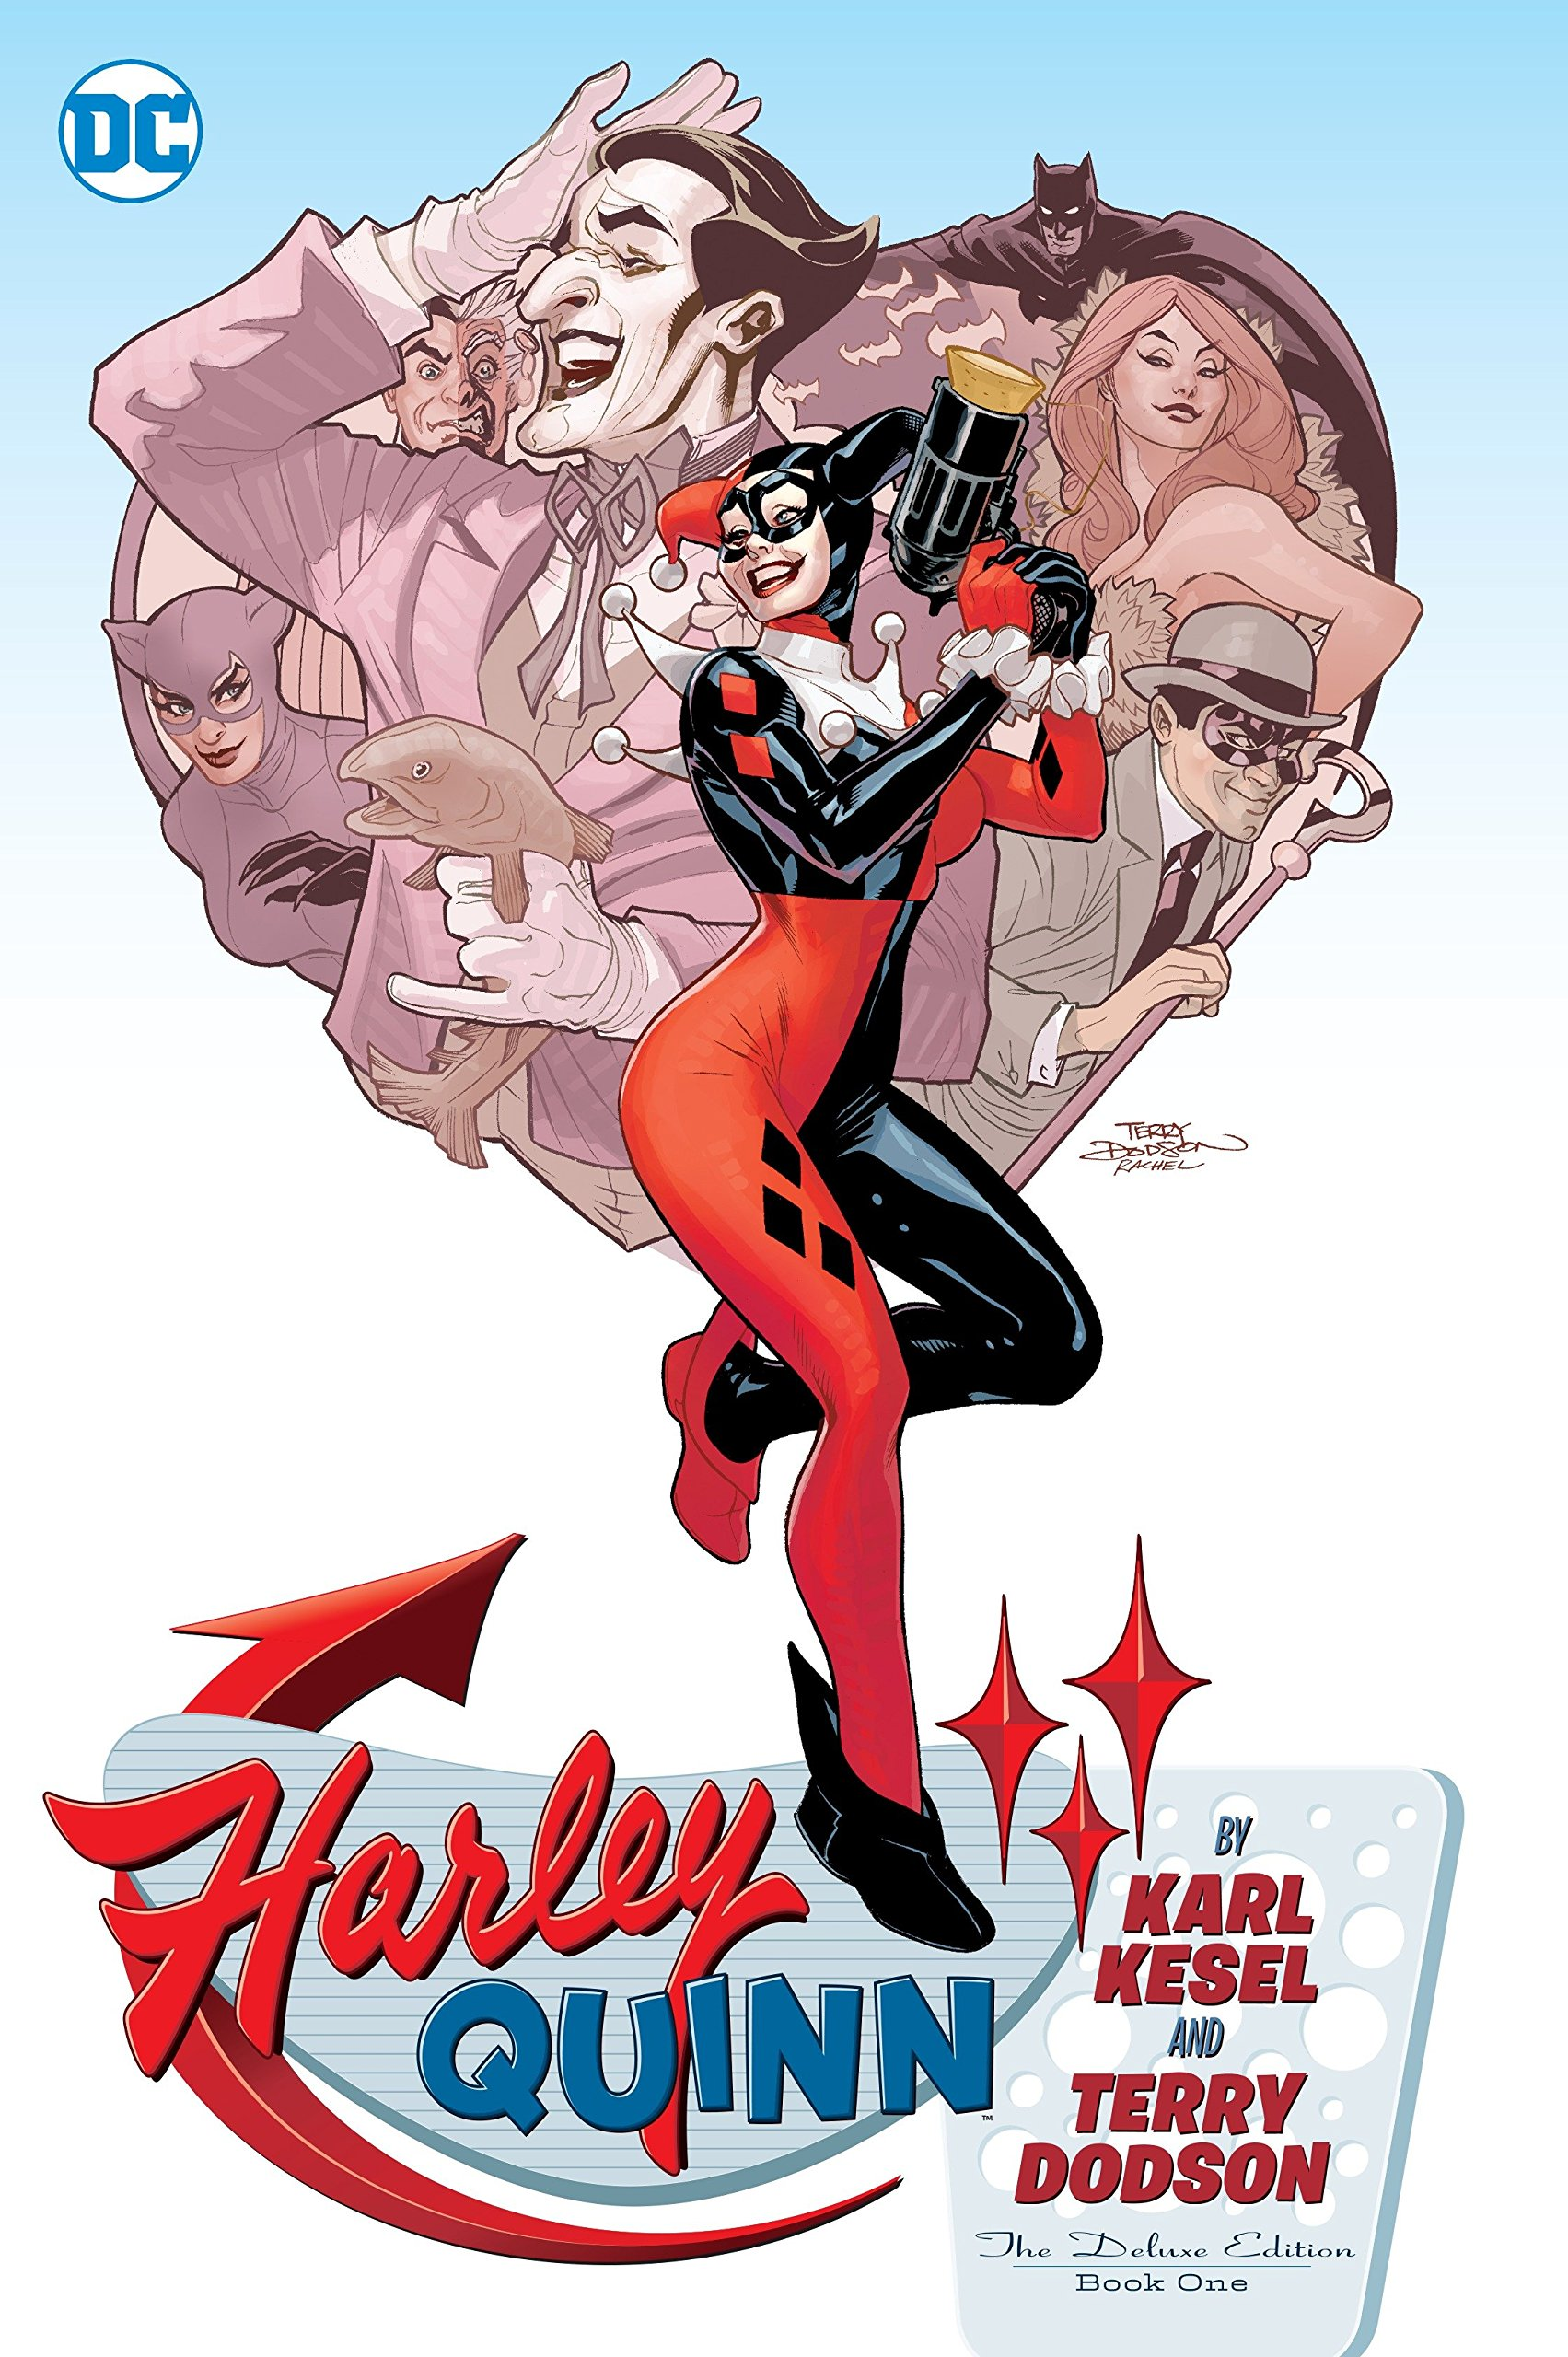 c3f31073d320 Harley Quinn By Karl Kesel And Terry Dodson  The Deluxe Edition Book One  Hardcover – September 12